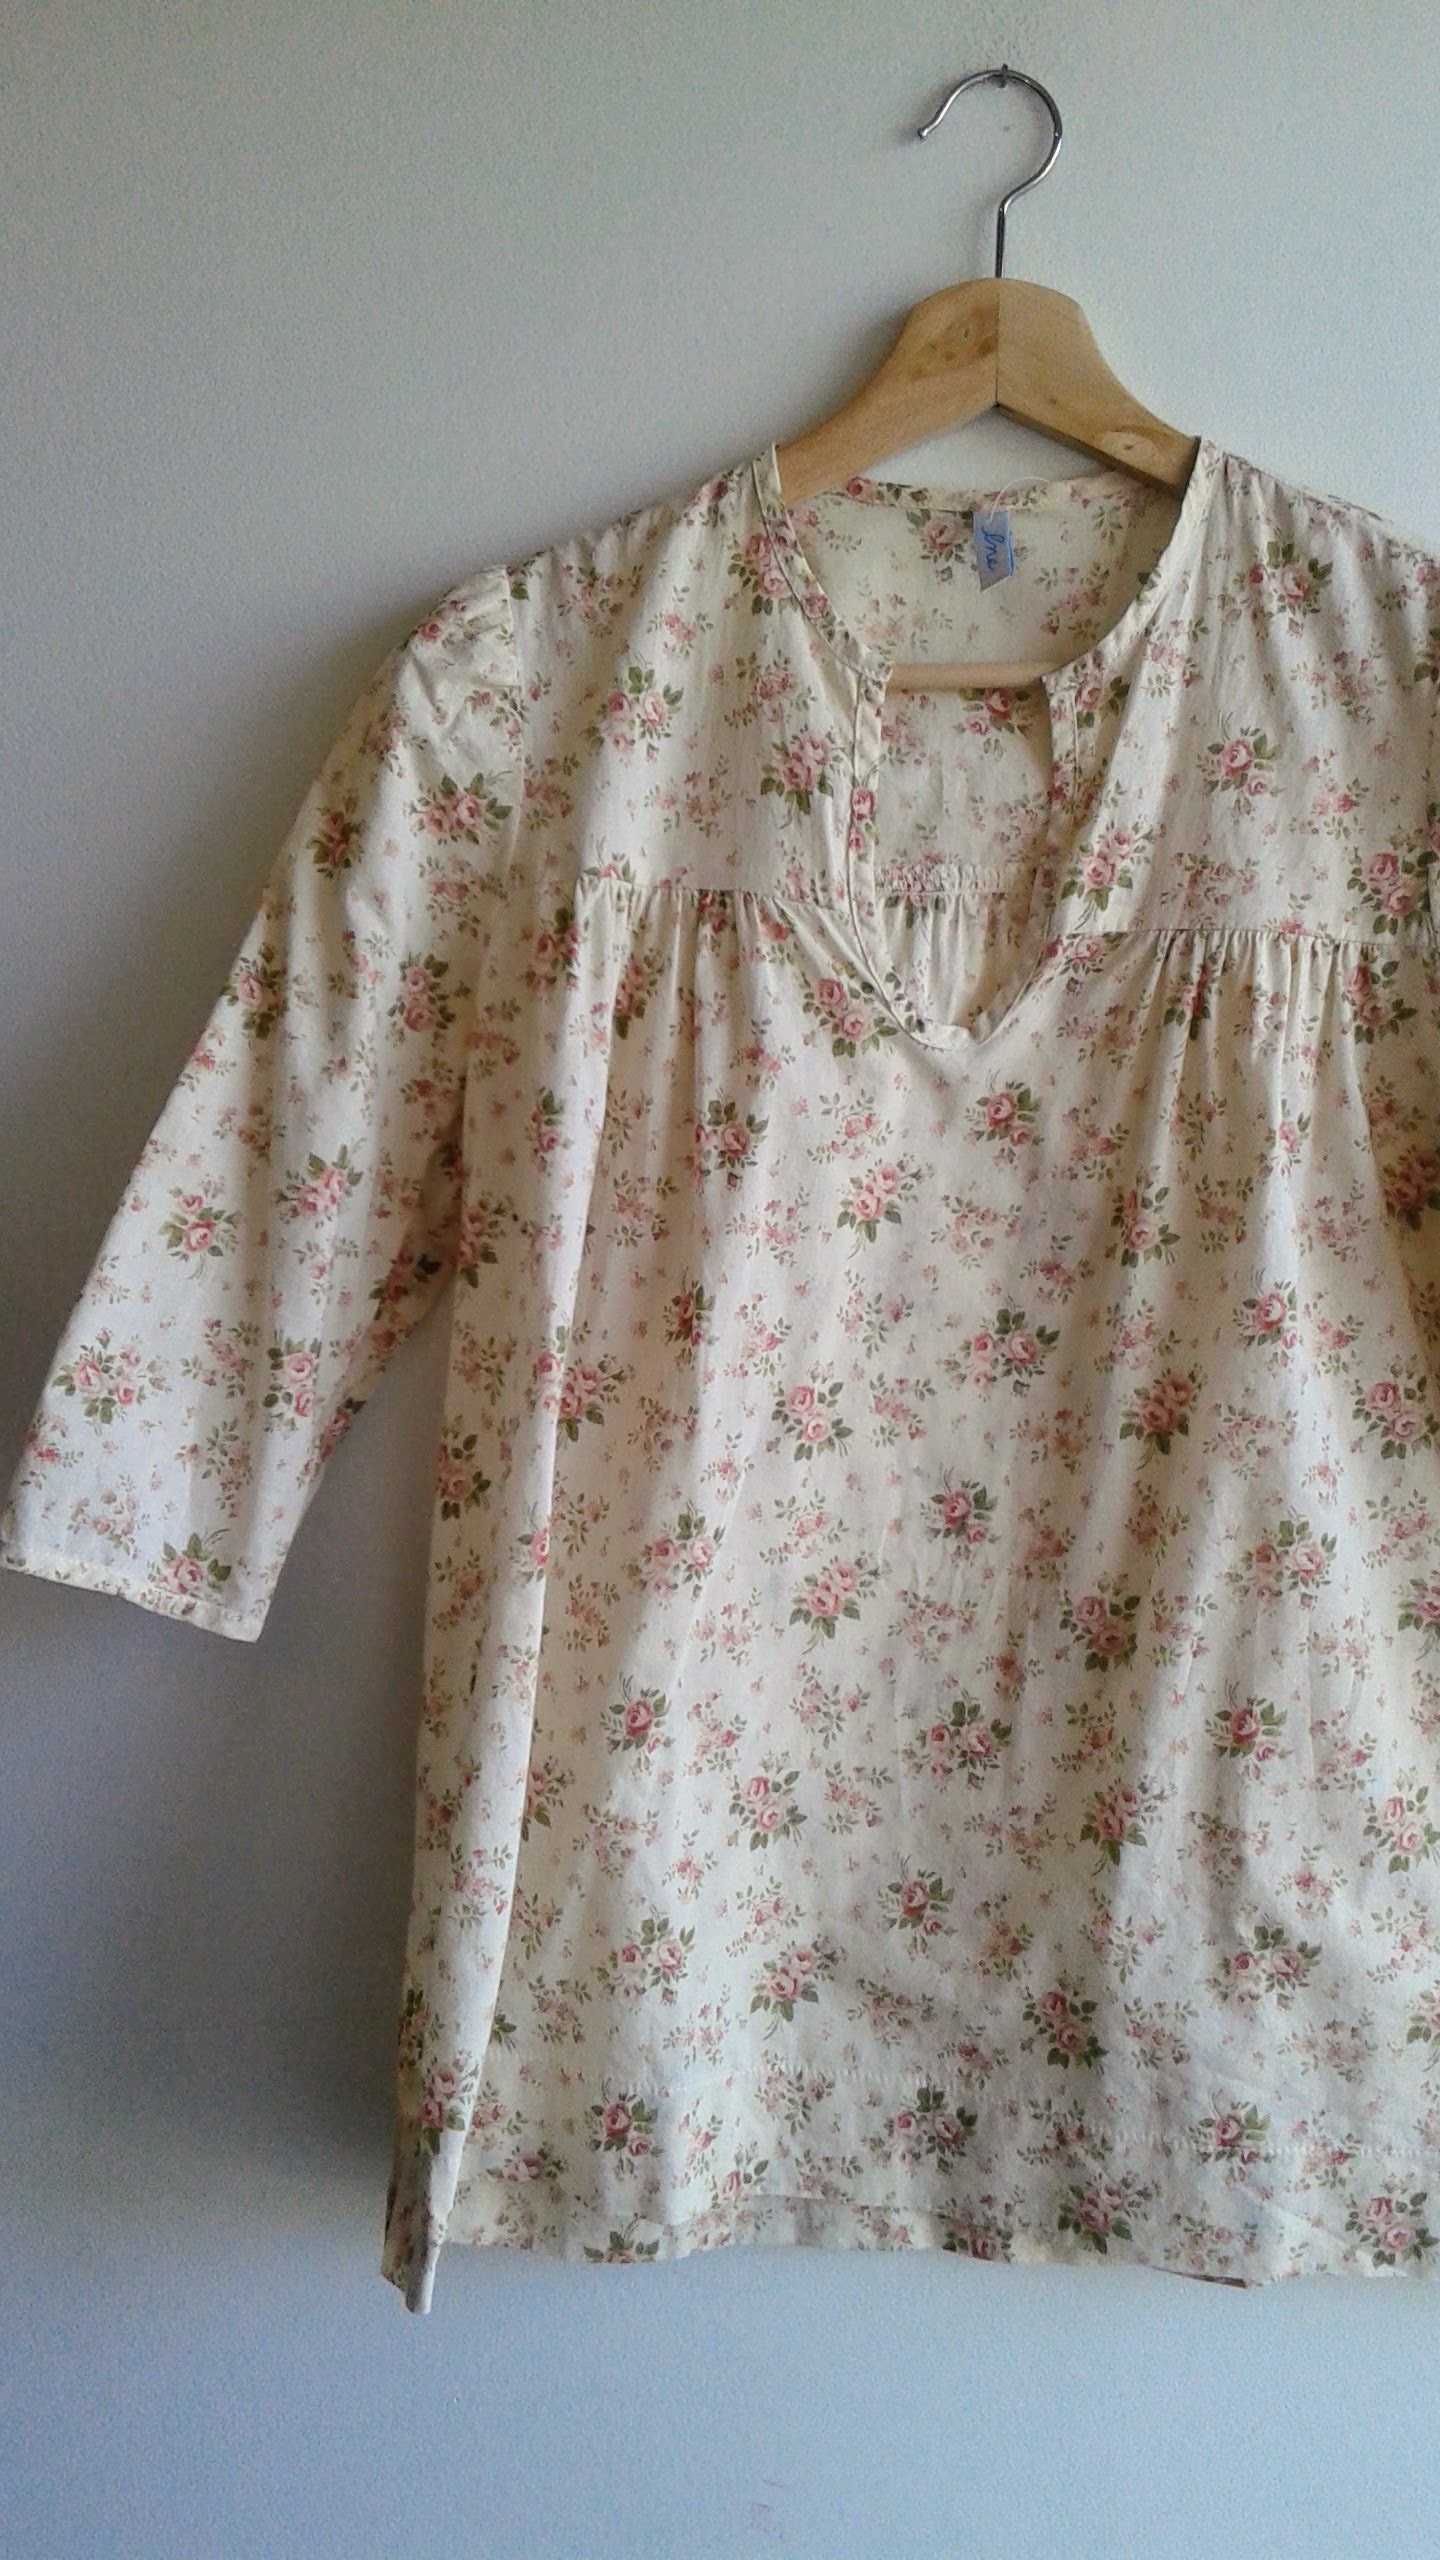 Flower top; Size S, $16